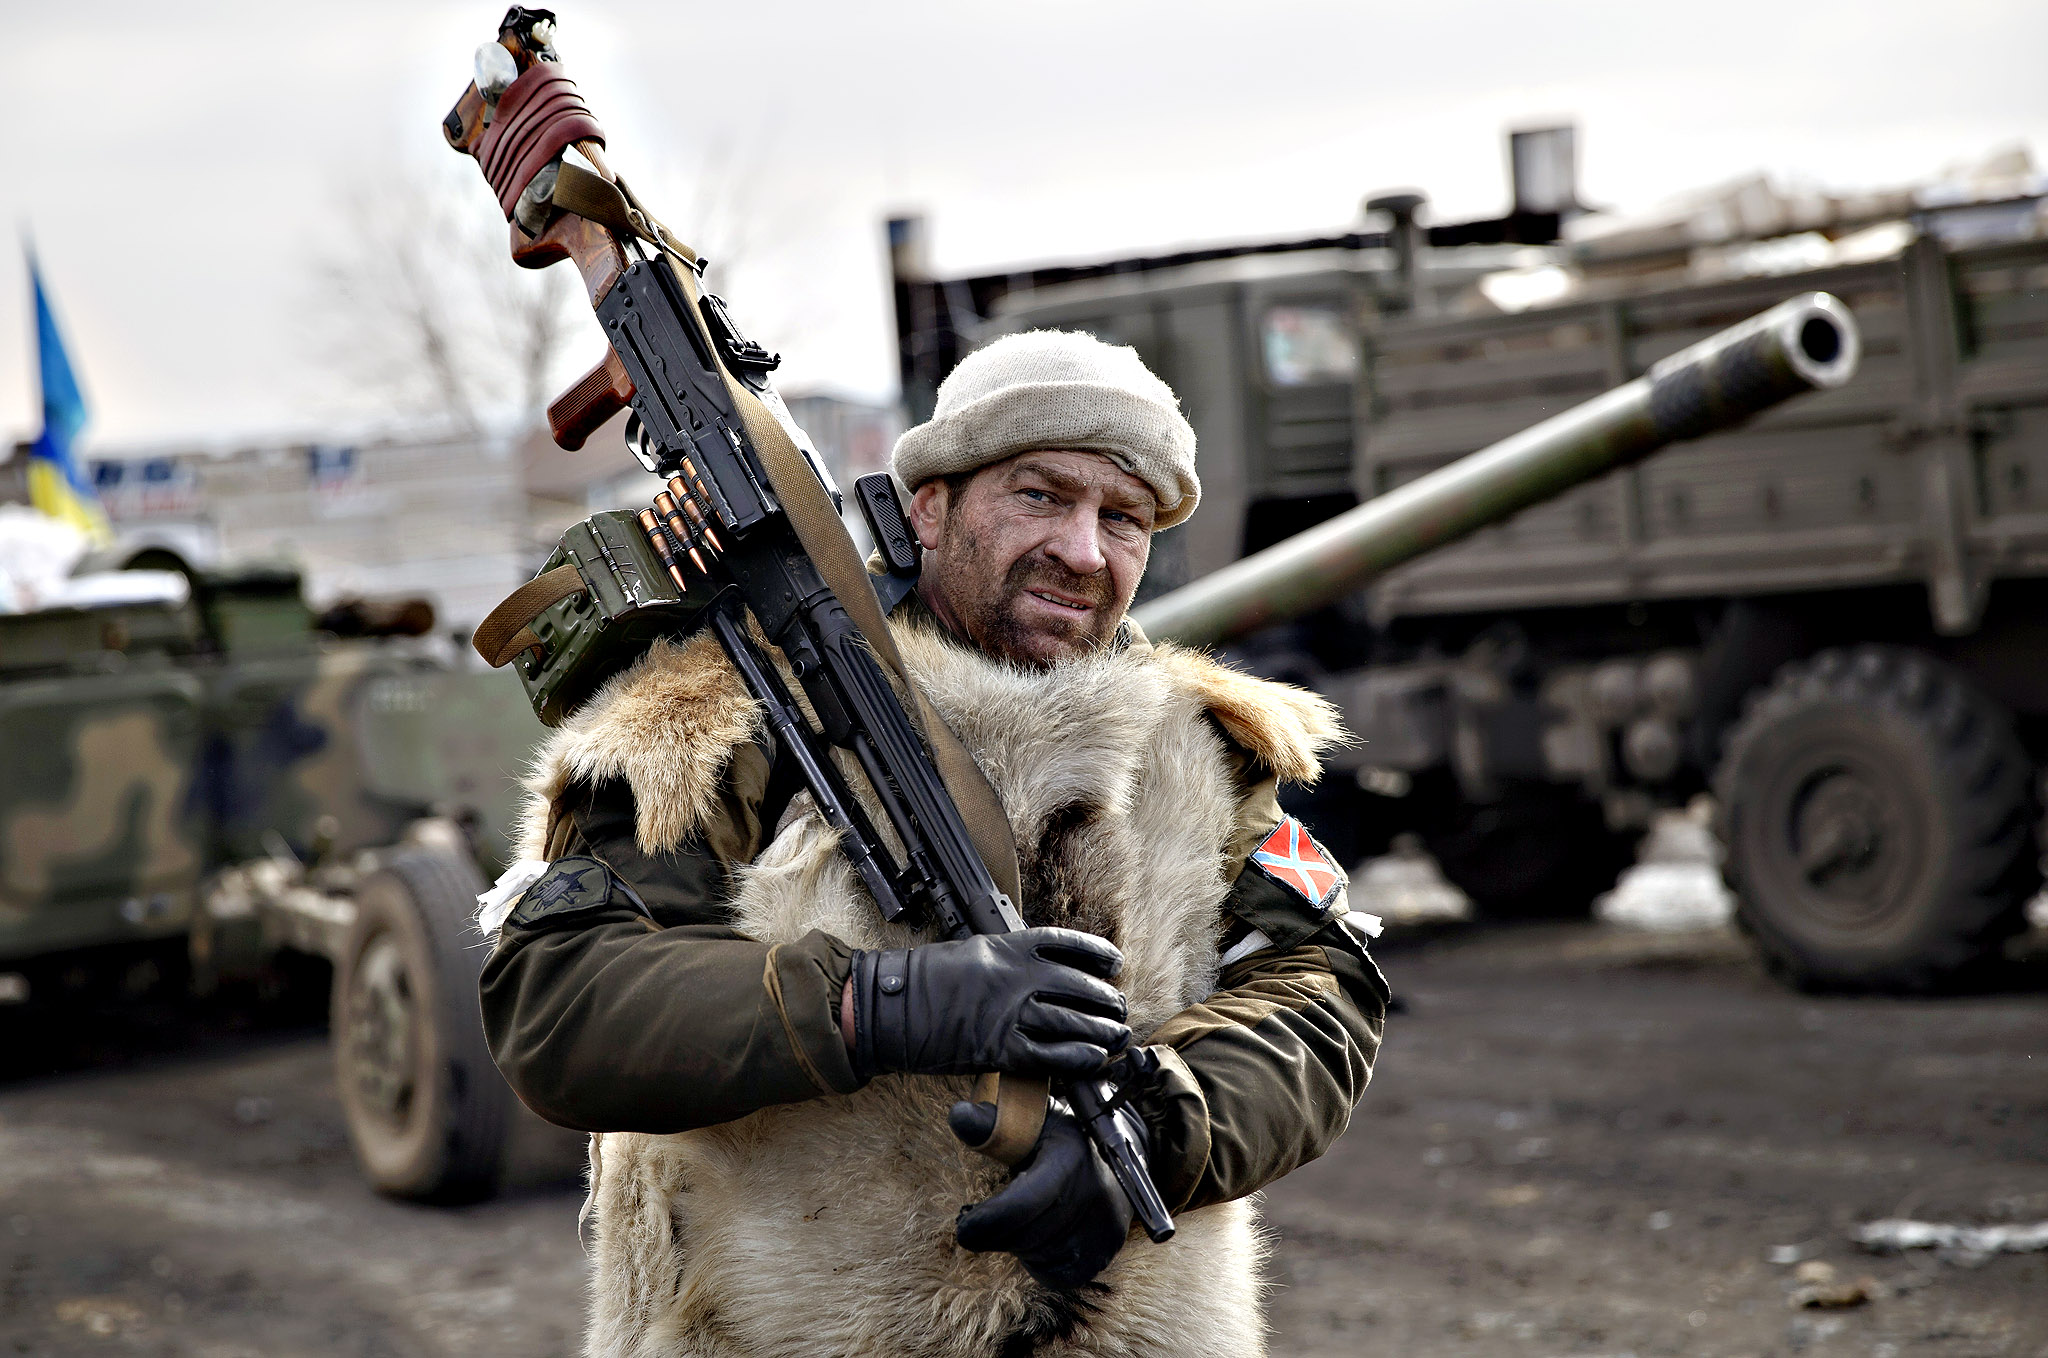 A Russia-backed rebel holds a heavy machine-gun in Debaltseve, Ukraine, Friday, Feb. 20, 2015. After weeks of relentless fighting, the embattled Ukrainian rail hub of Debaltseve fell Wednesday to Russia-backed separatists, who hoisted a flag in triumph over the town. The Ukrainian president confirmed that he had ordered troops to pull out and the rebels reported taking hundreds of soldiers captive.